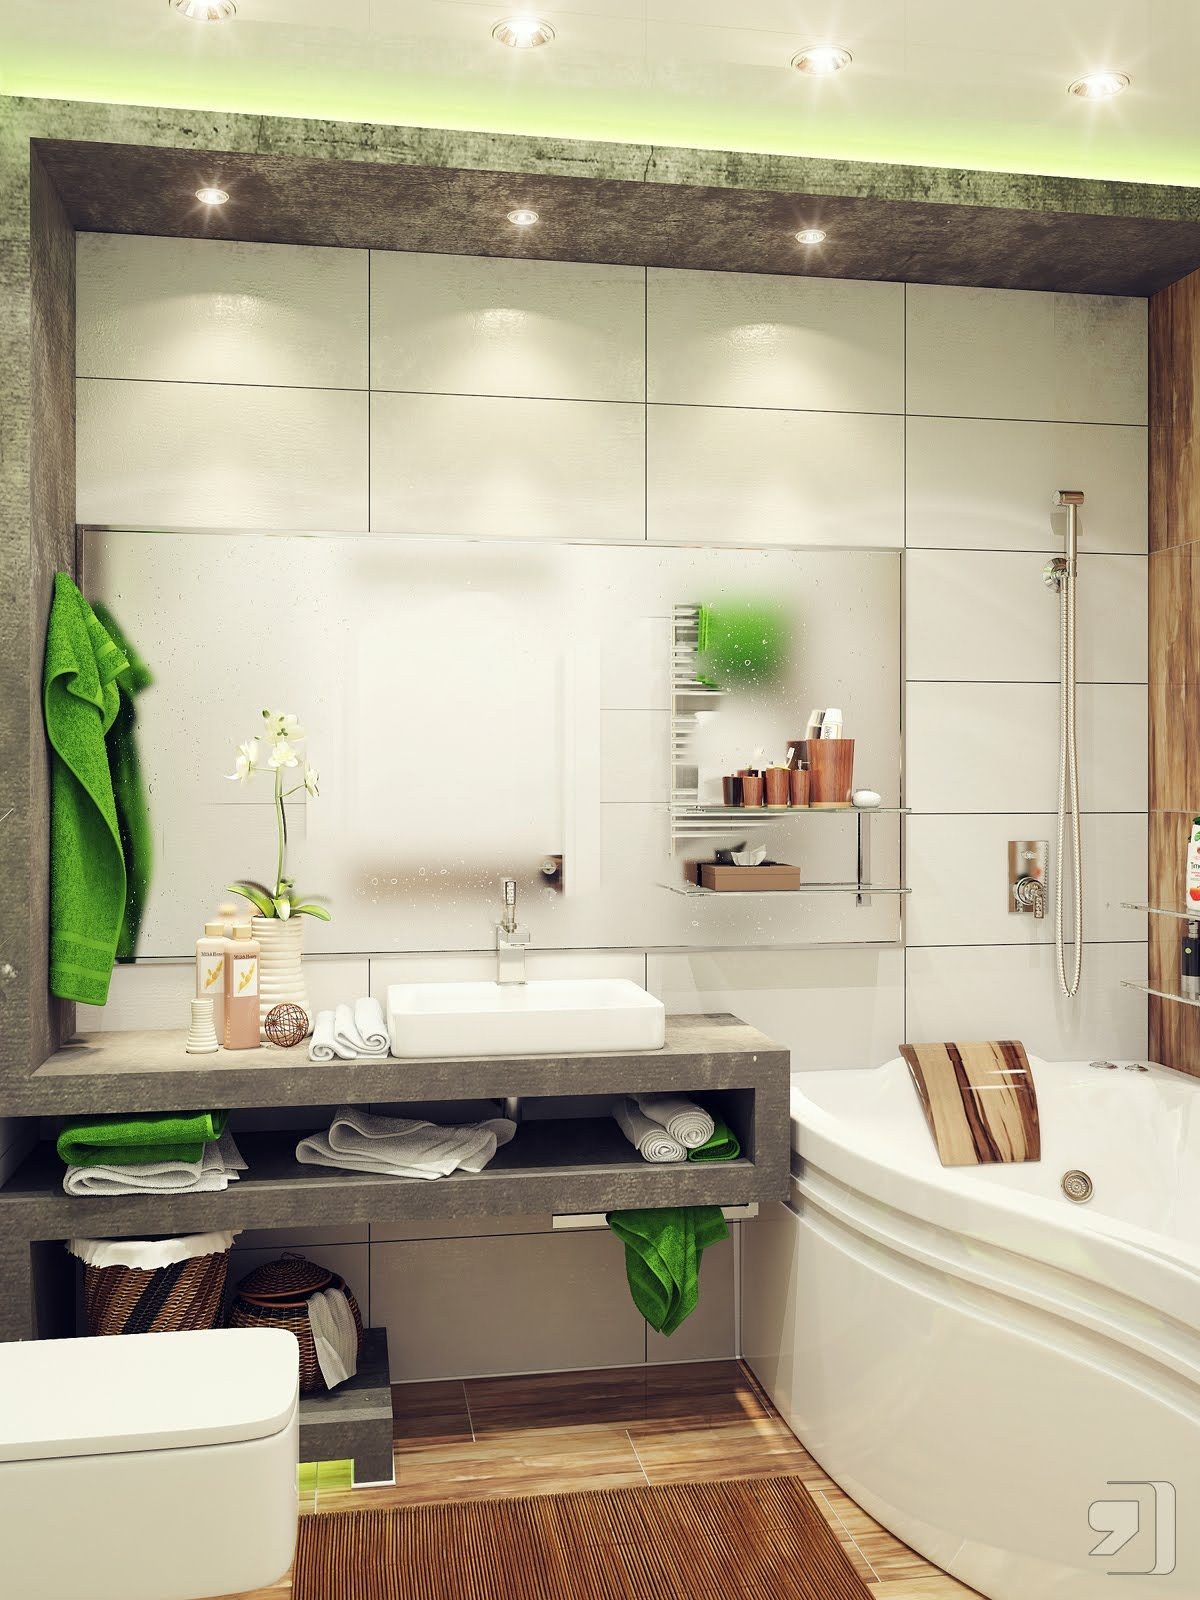 40 Modern Bathroom Vanities That Overflow With Style images 31